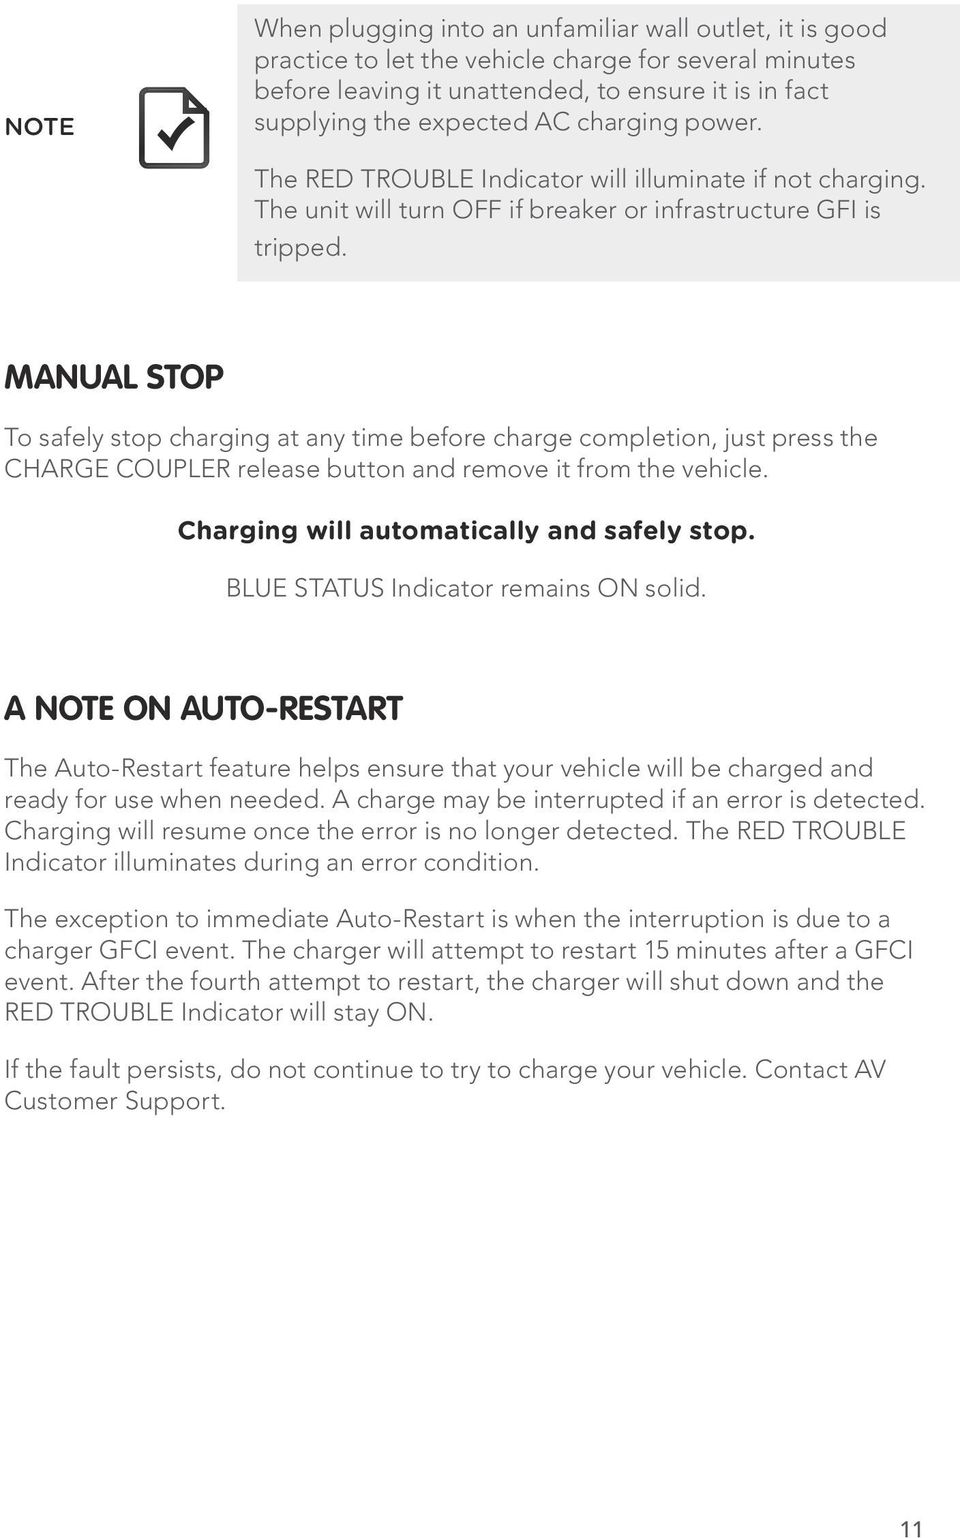 MANUAL STOP To safely stop charging at any time before charge completion, just press the CHARGE COUPLER release button and remove it from the vehicle. Charging will automatically and safely stop.